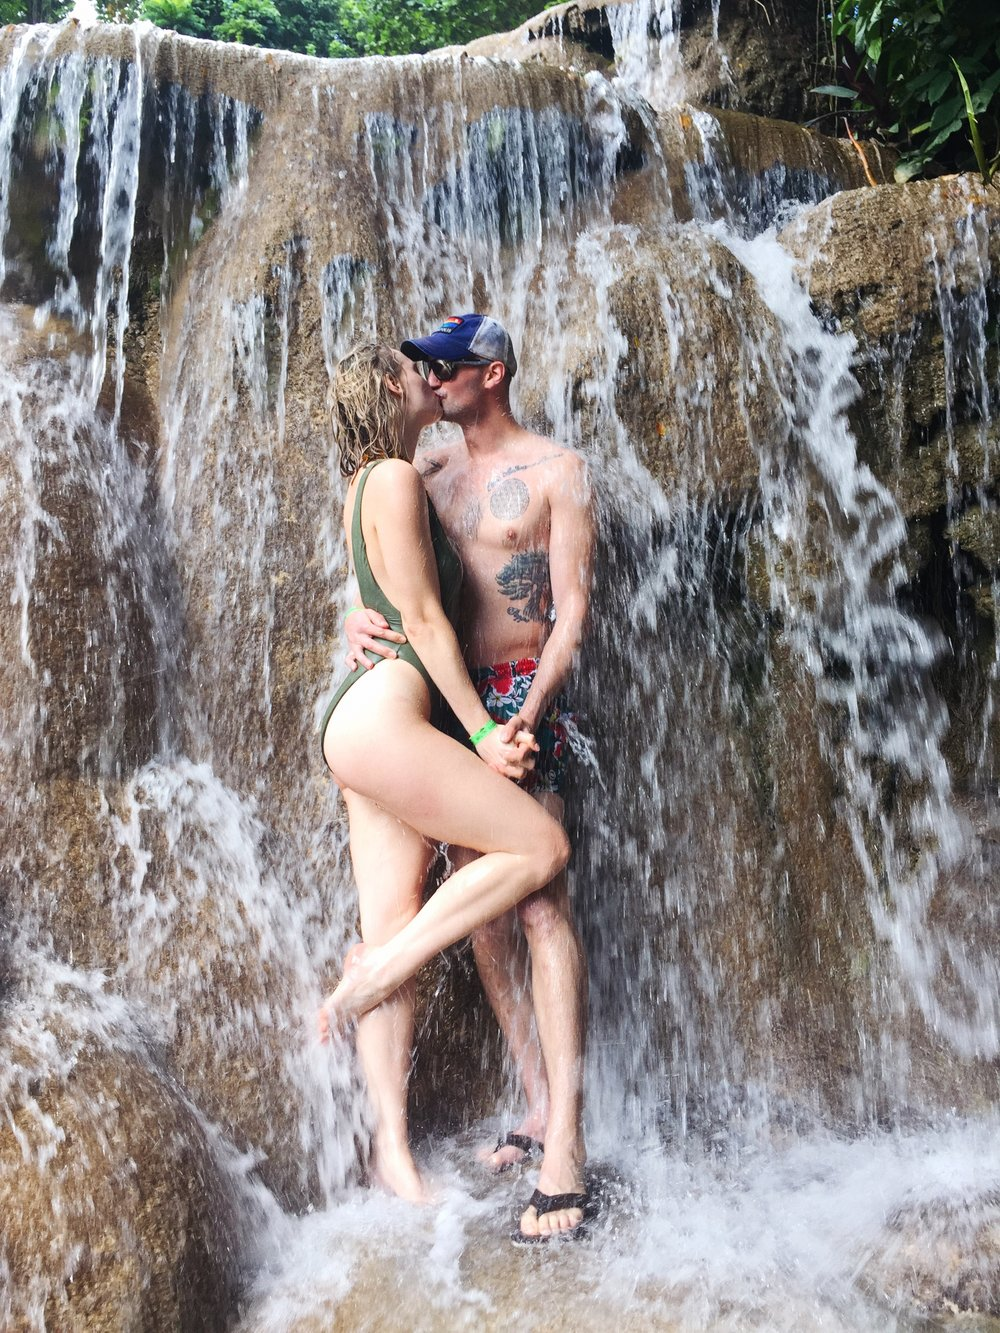 We climbed a waterfall on our surprise Jamaican honeymoon.